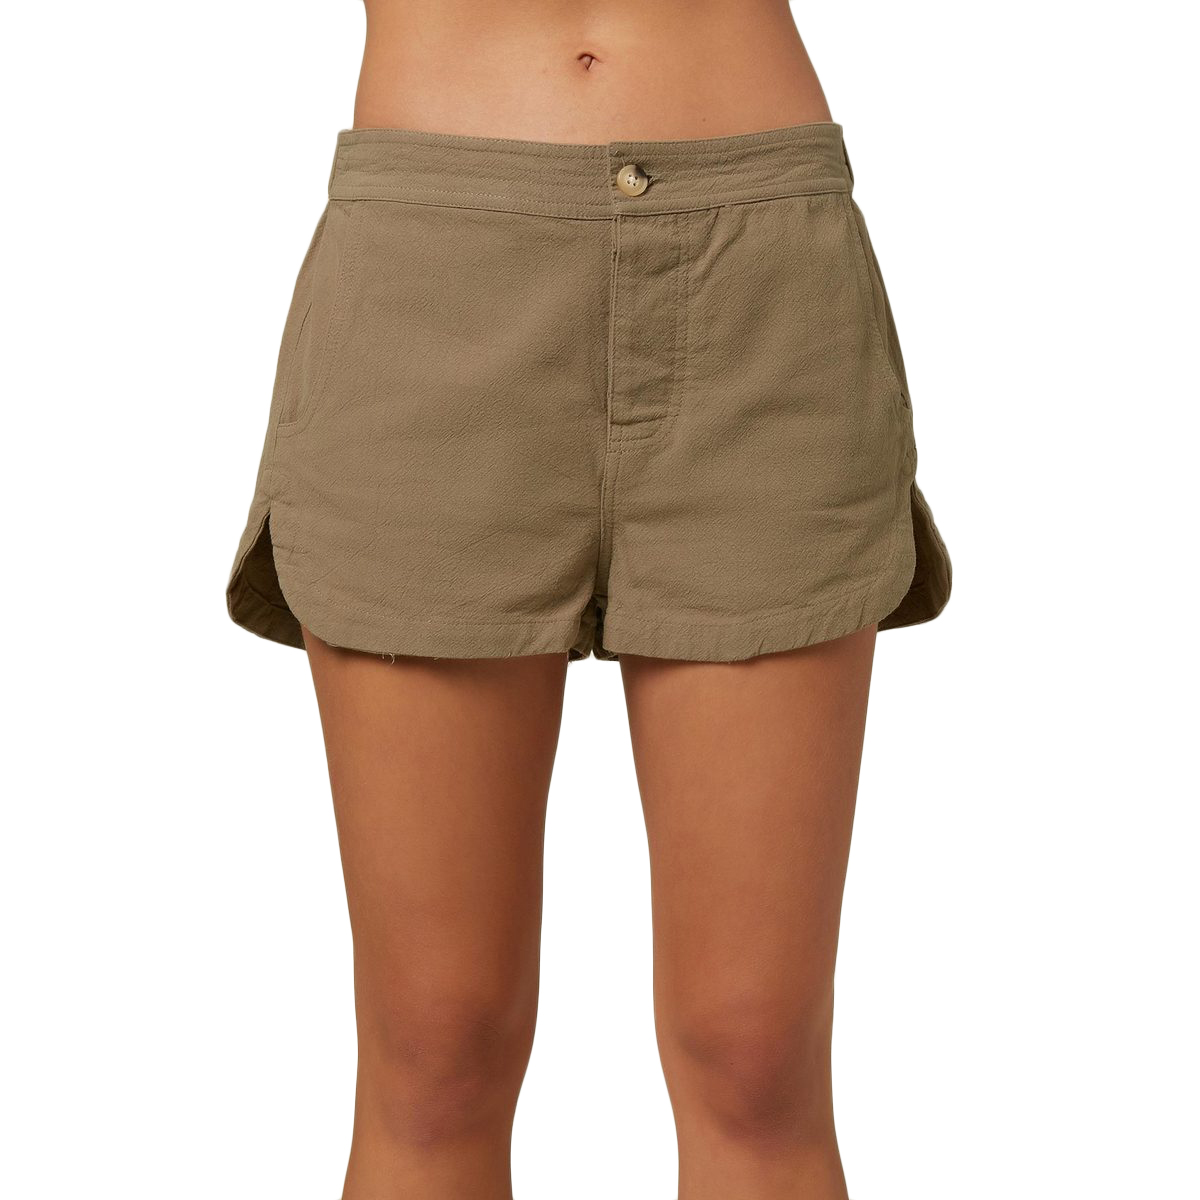 O'neill Women's Bismark Shorts - Green, L